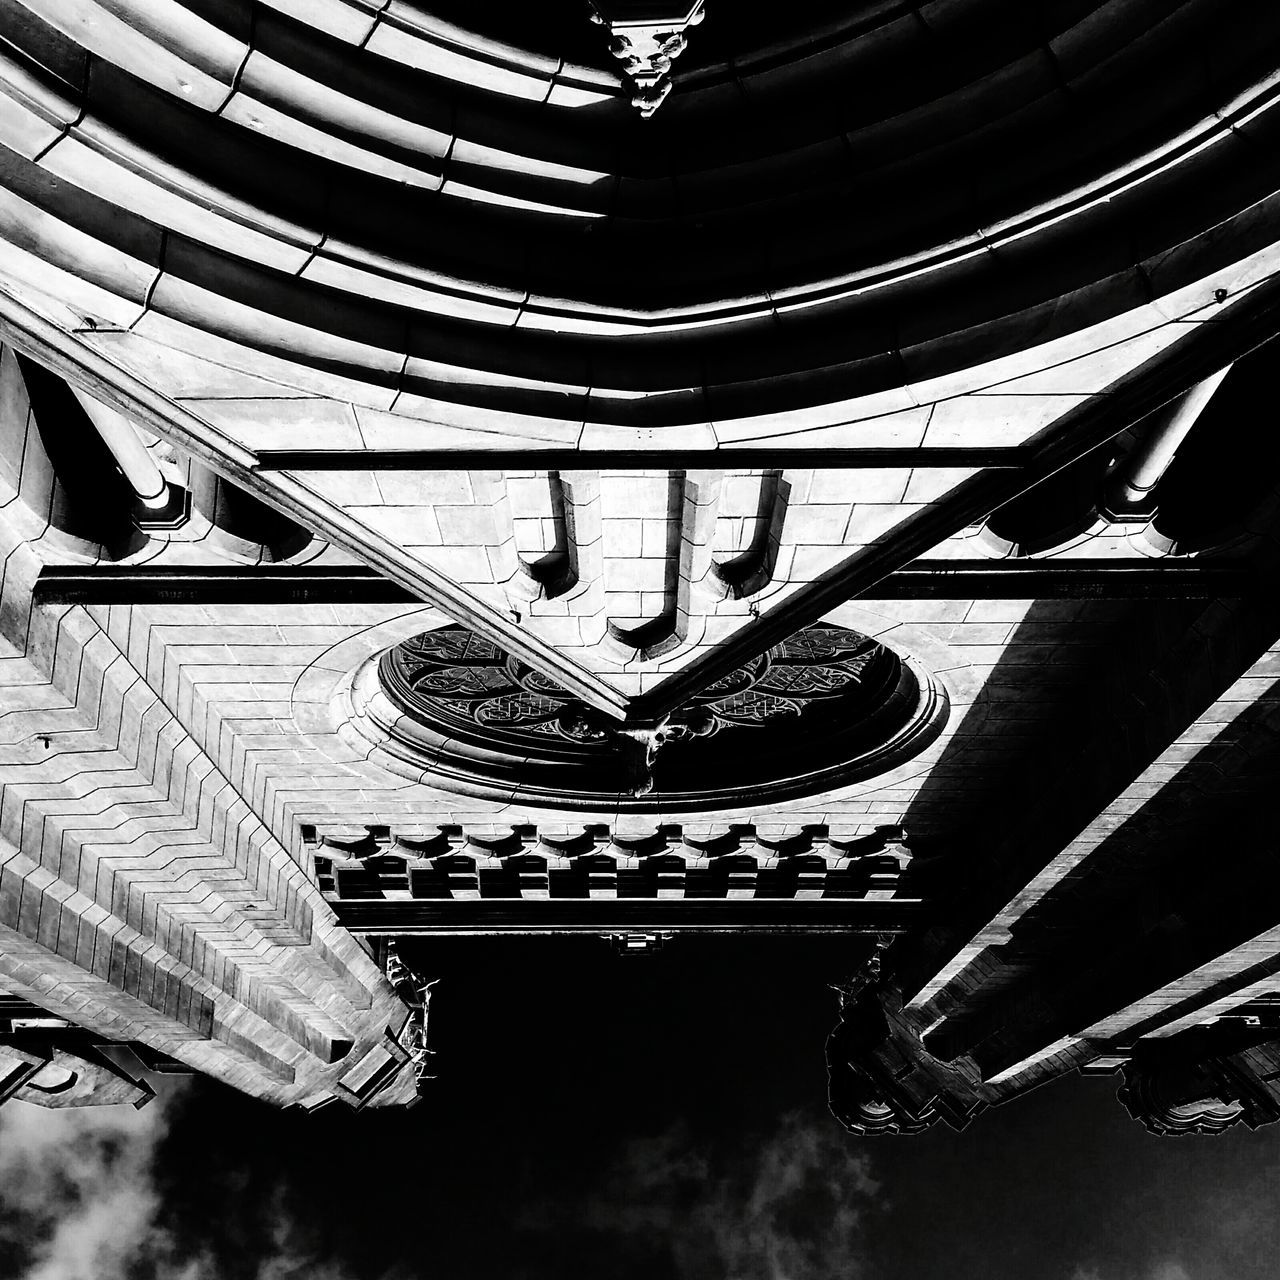 Oblivion Low Angle View Architecture Blackandwhite Architectural Detail Architectural Blackandwhite Photography Urban Geometry Architecture_bw Blackandwhitephotography Architecture Photography Diminishing Perspective Architectural Feature Mobilephotography Geometric Shape Urbanphotography Architecture_collection Silhouette